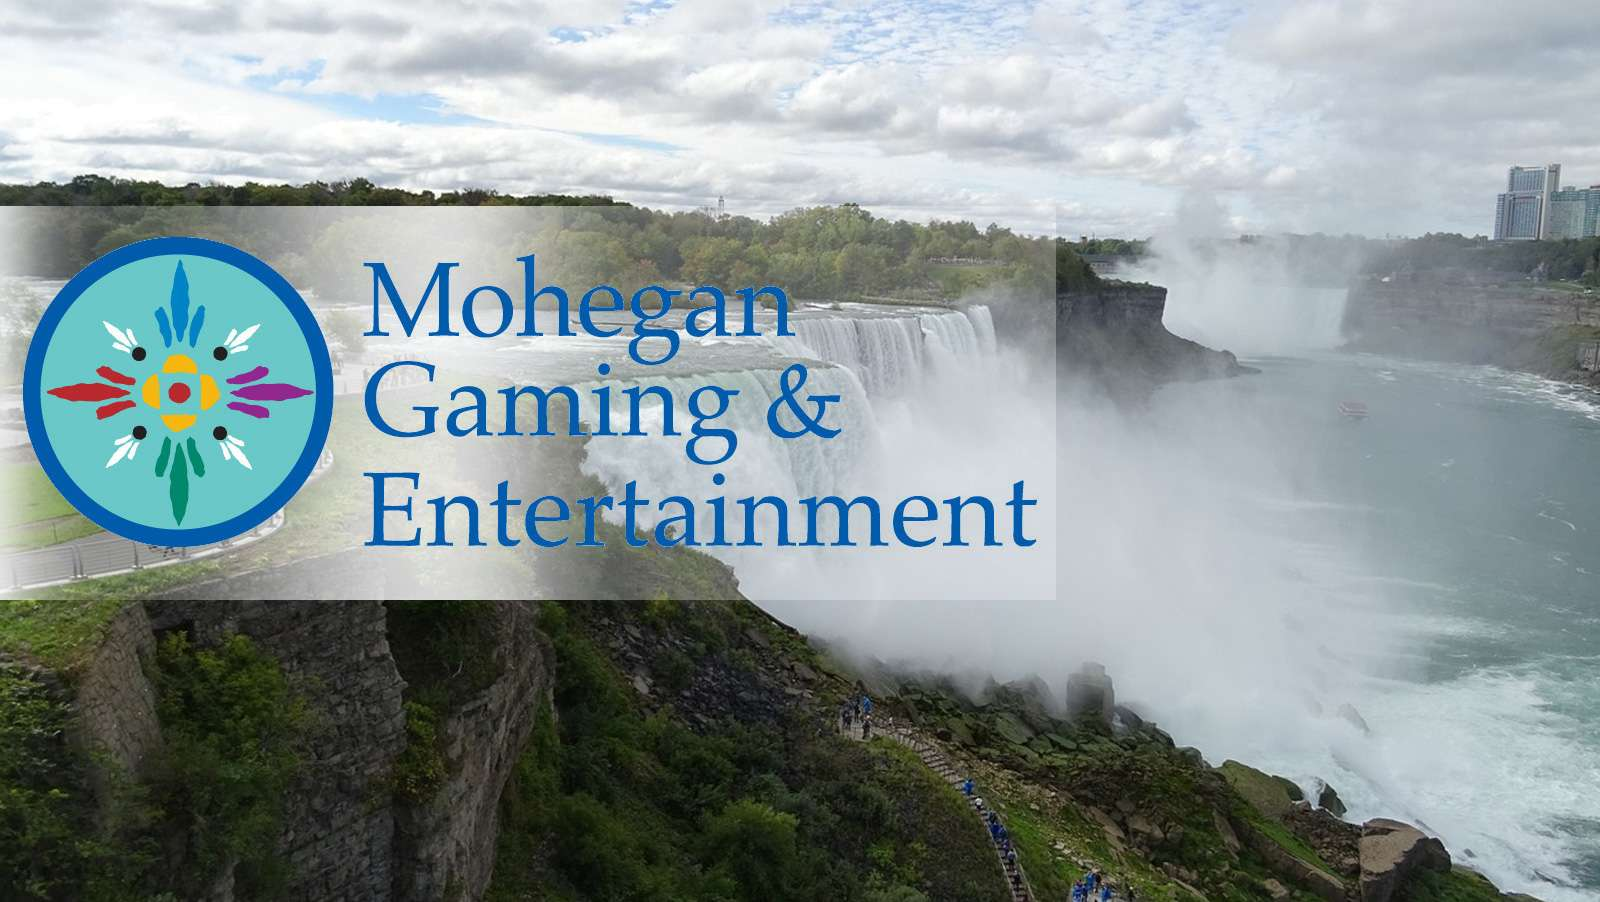 former-landing-international-exec-lead-mohegan-operations